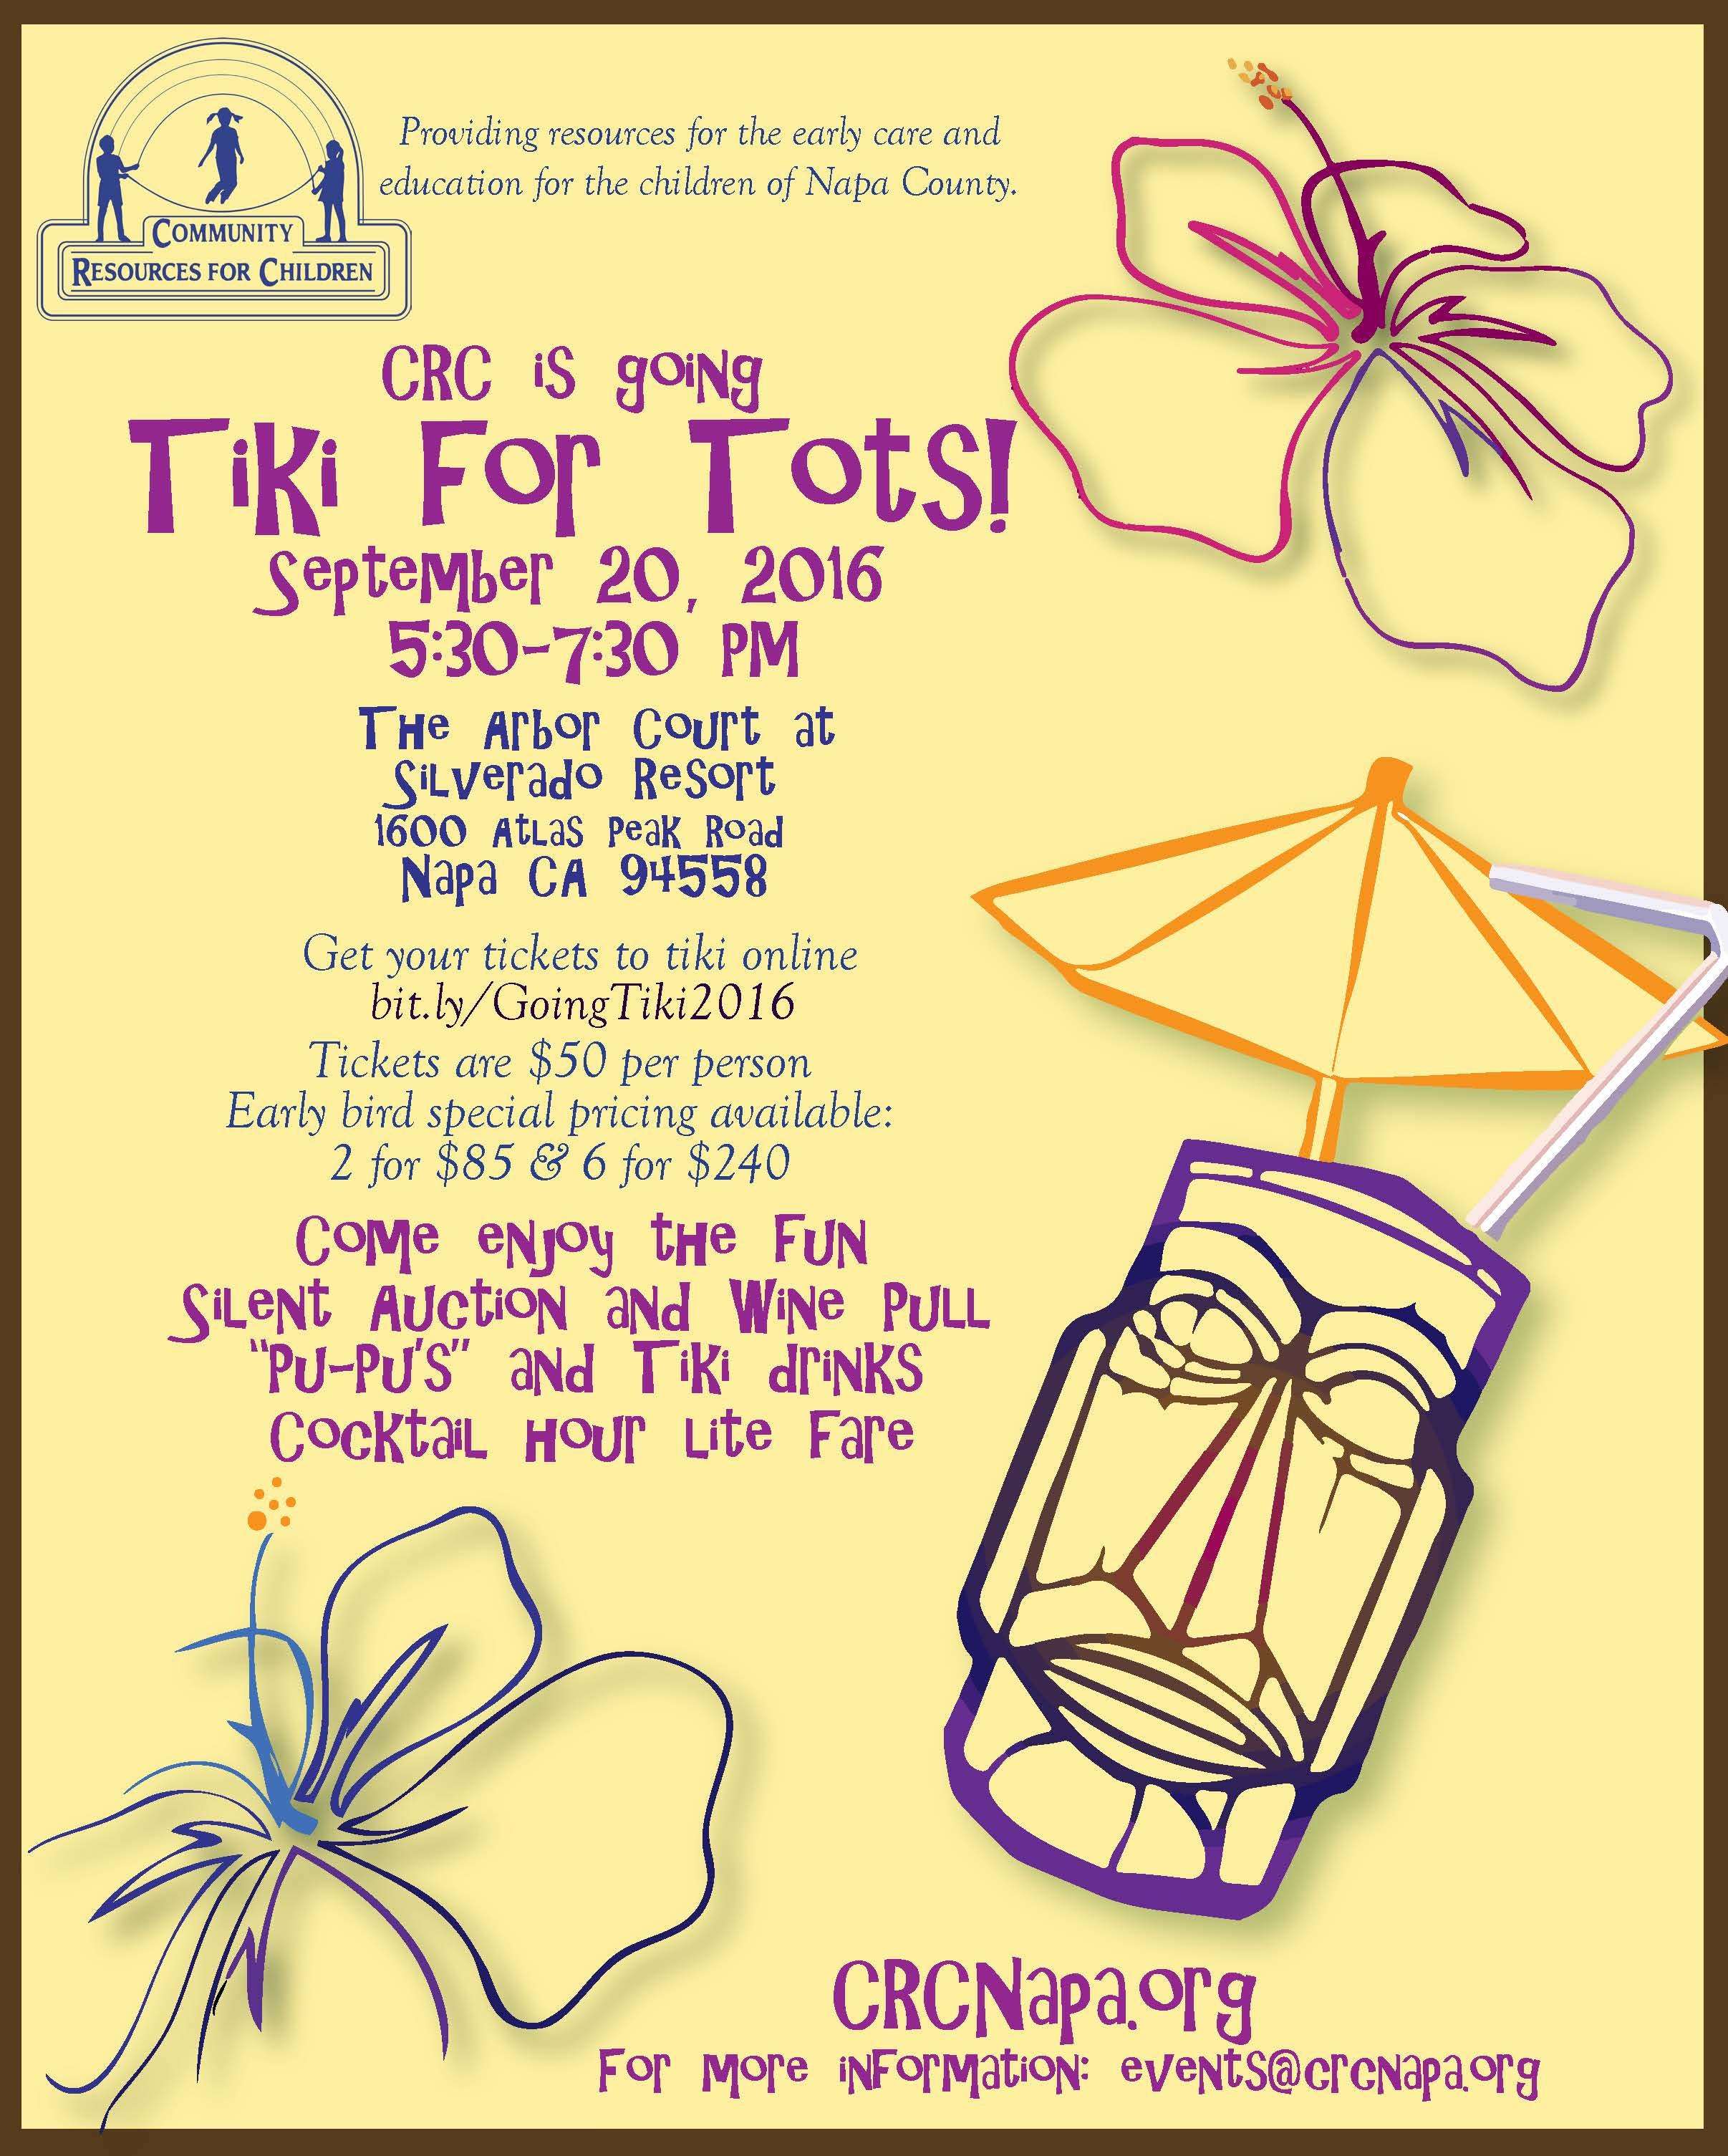 Going Tiki for Tots